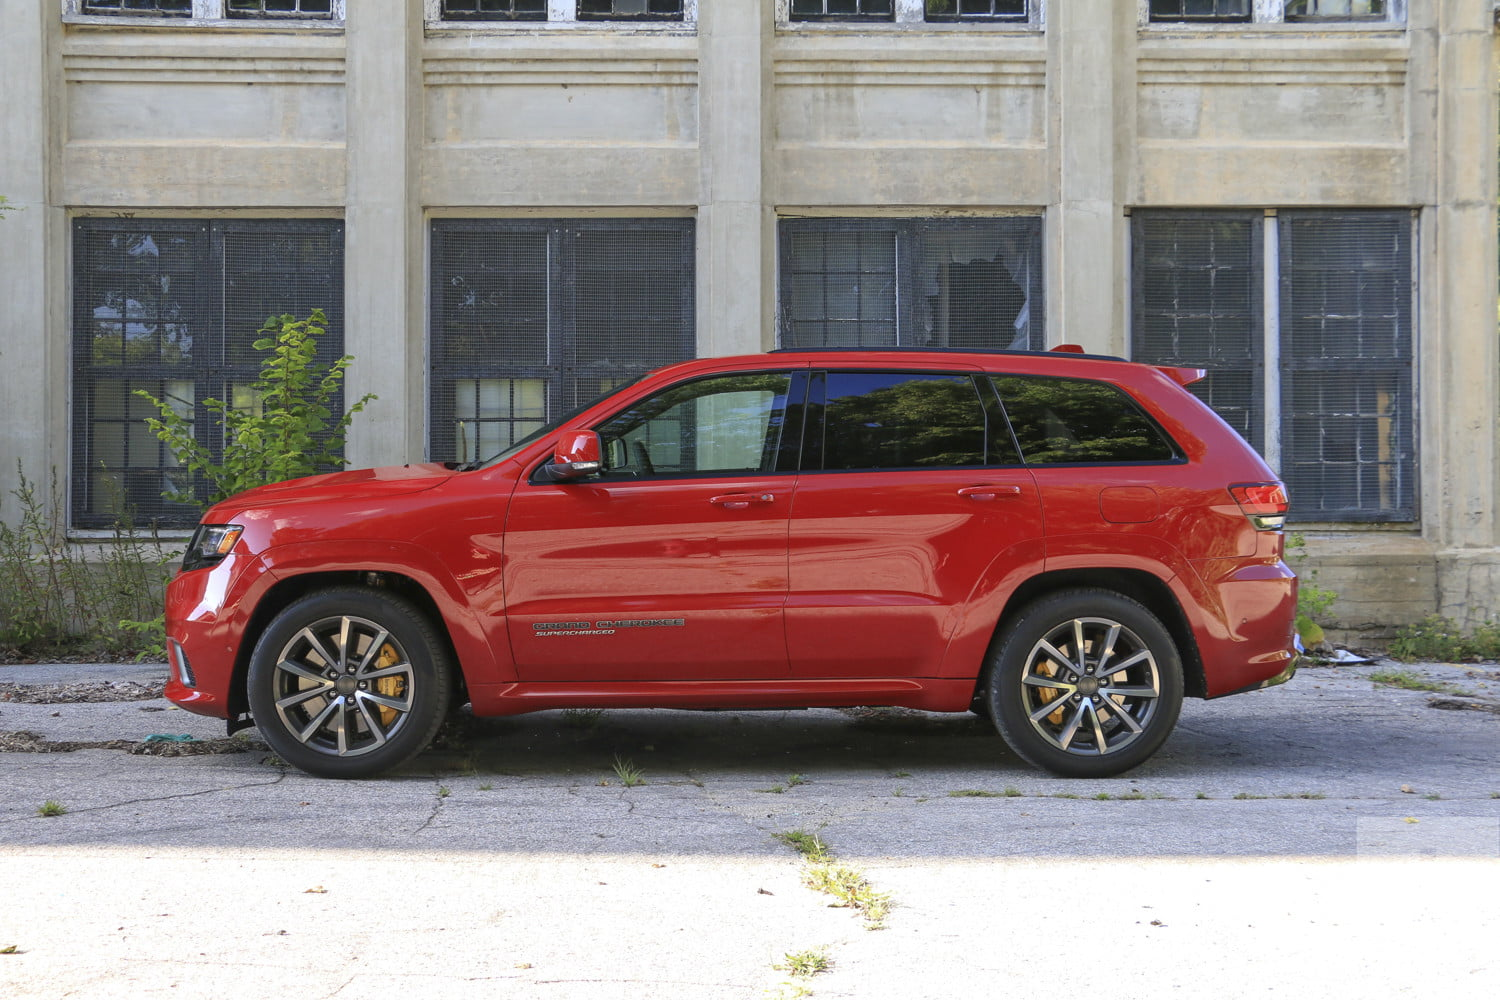 model grand review reviews car original cherokee photo driver s and in jeep depth